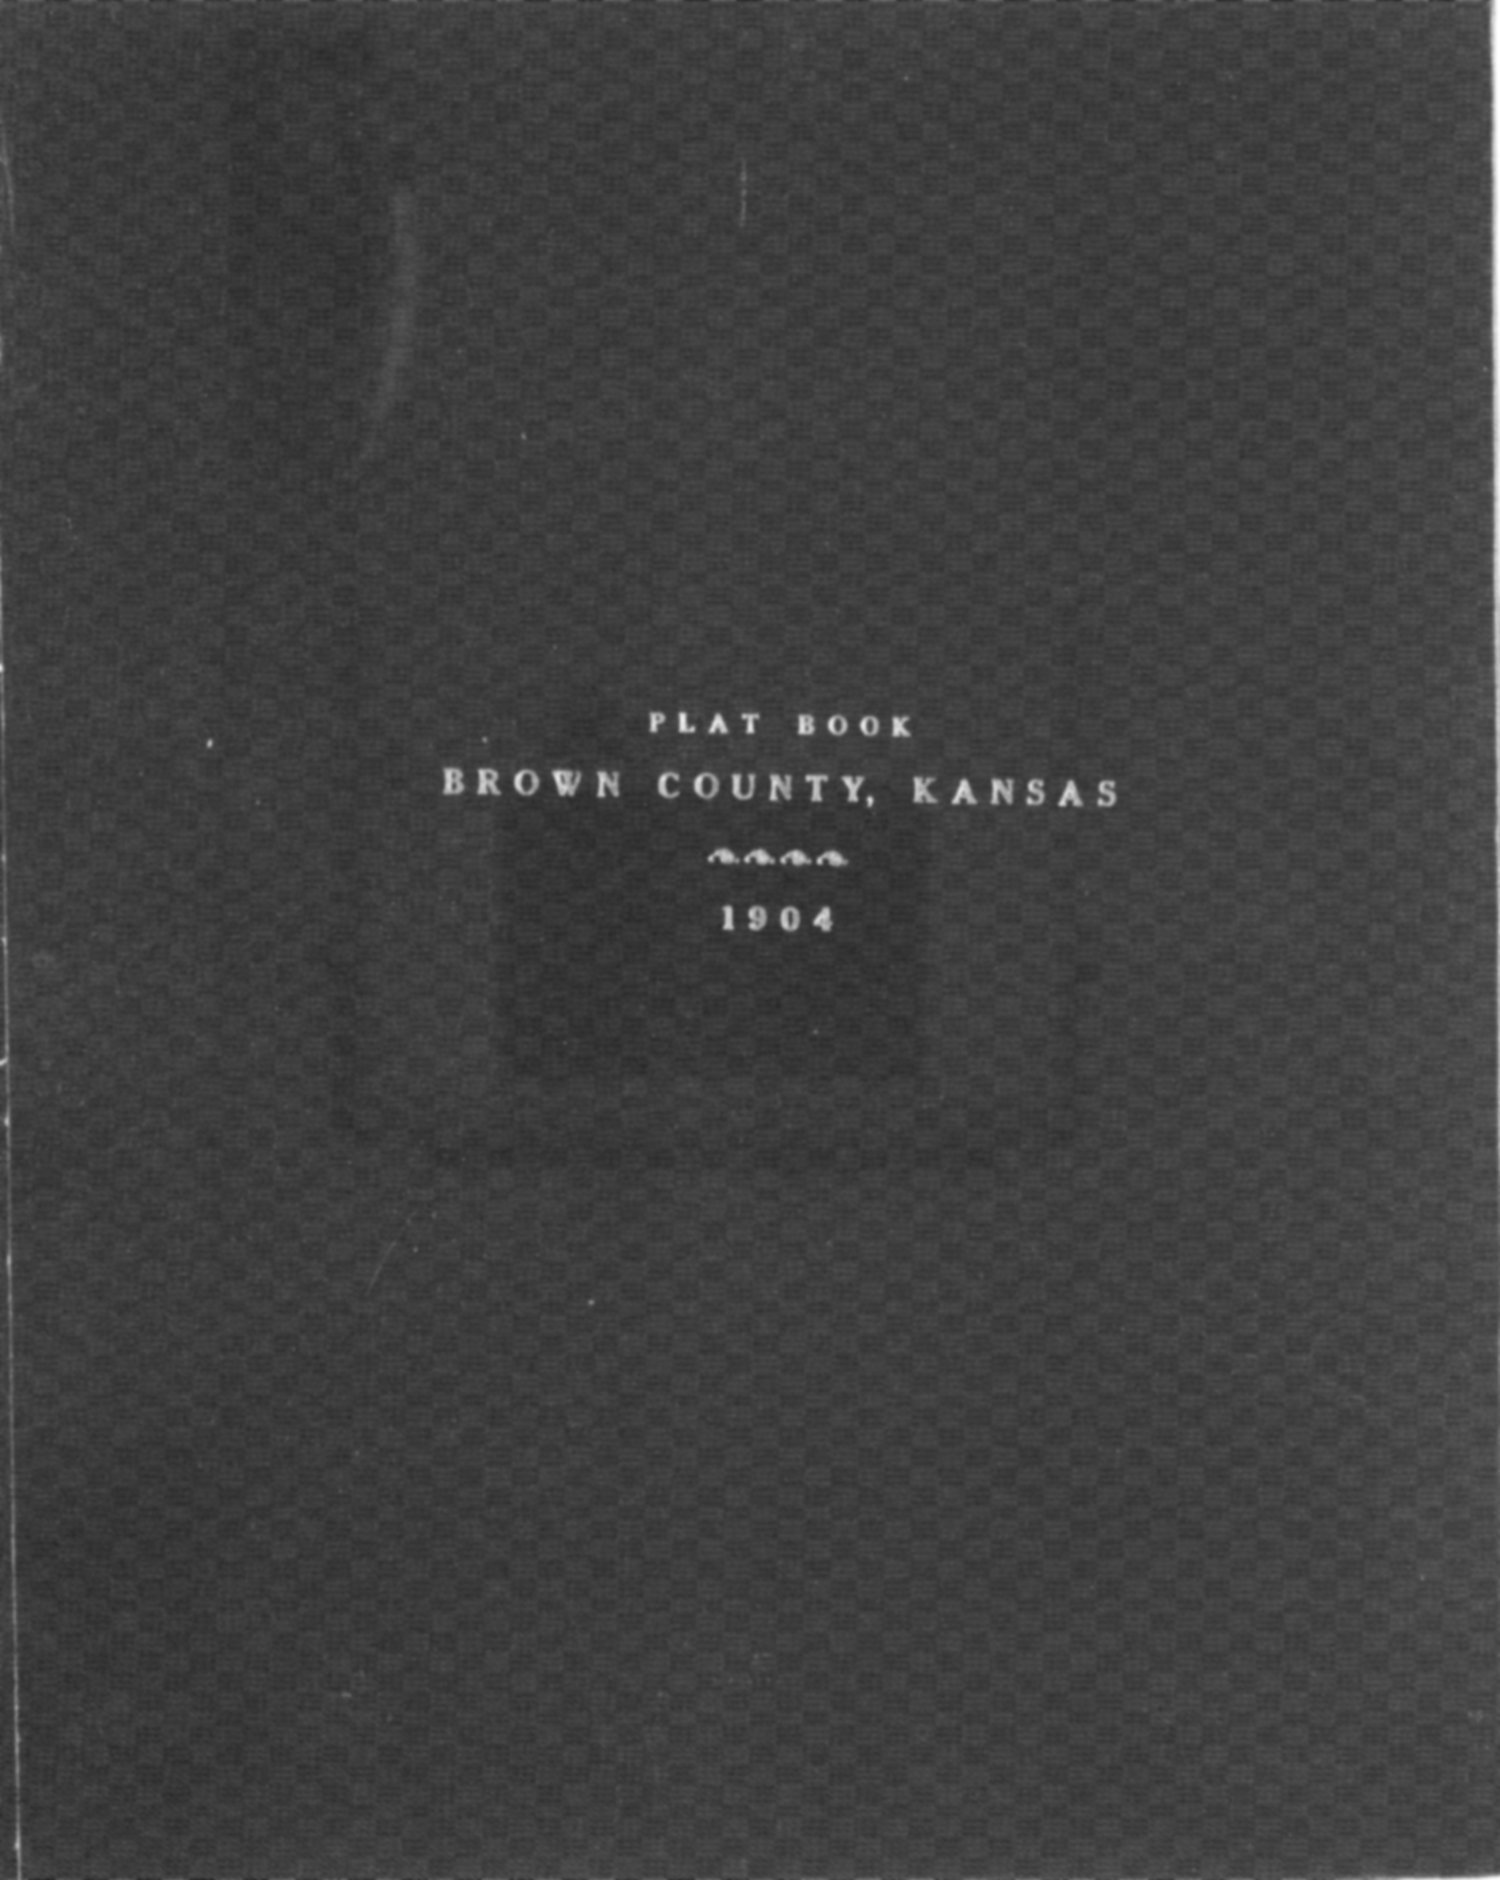 Plat book of Brown County, Kansas - Cover